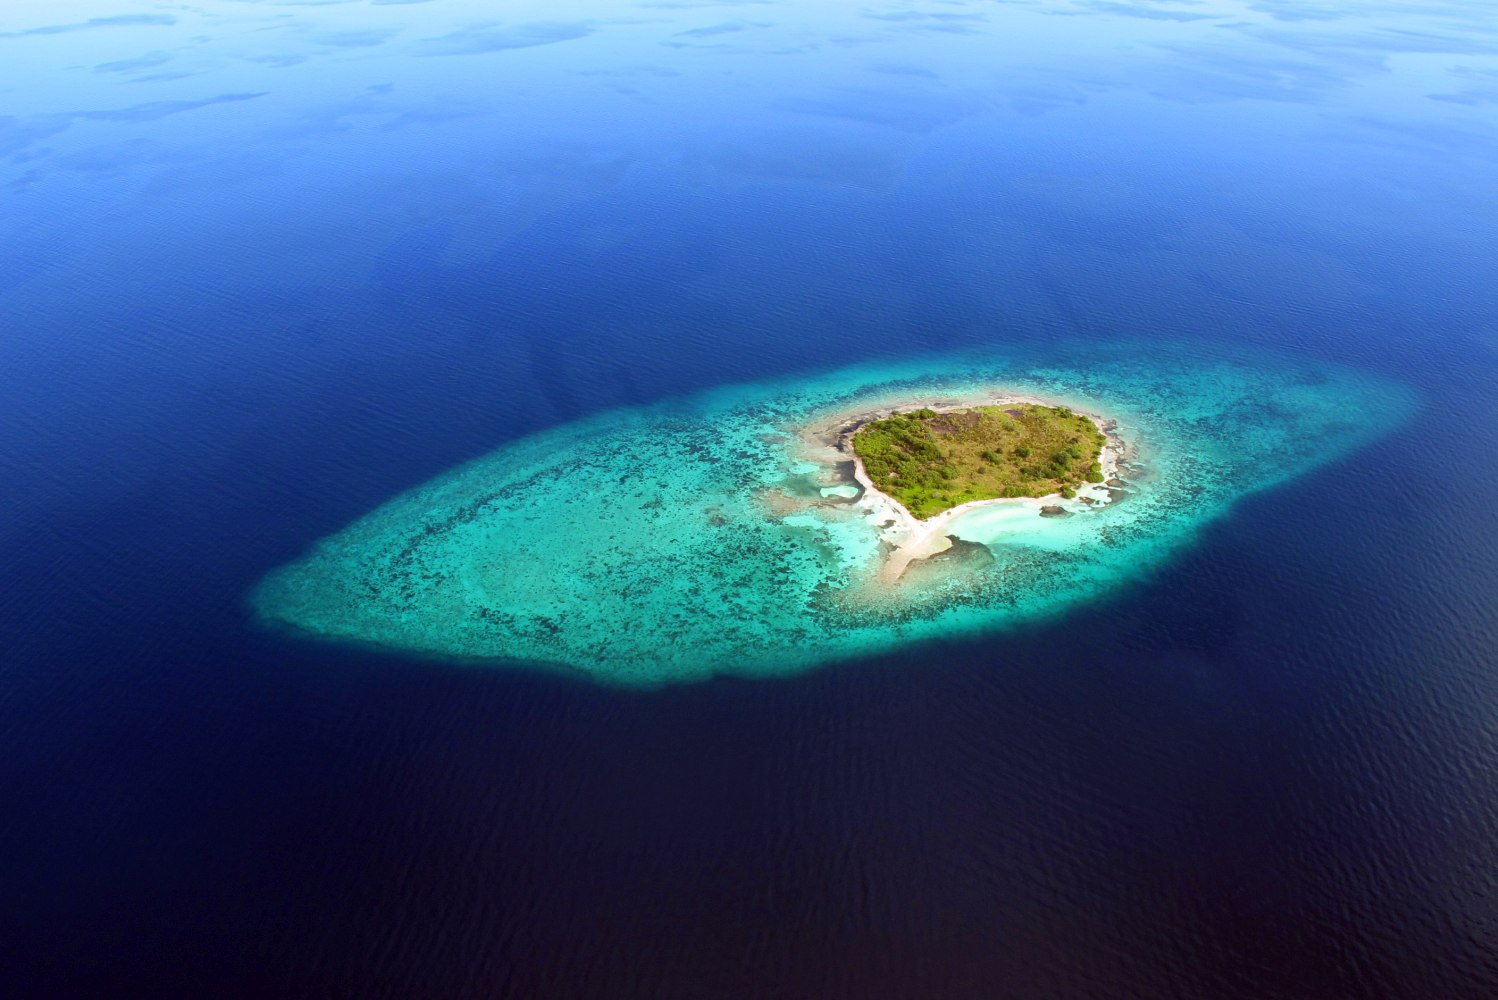 Private Islands for sale - Moho Cay - Belize - Central America